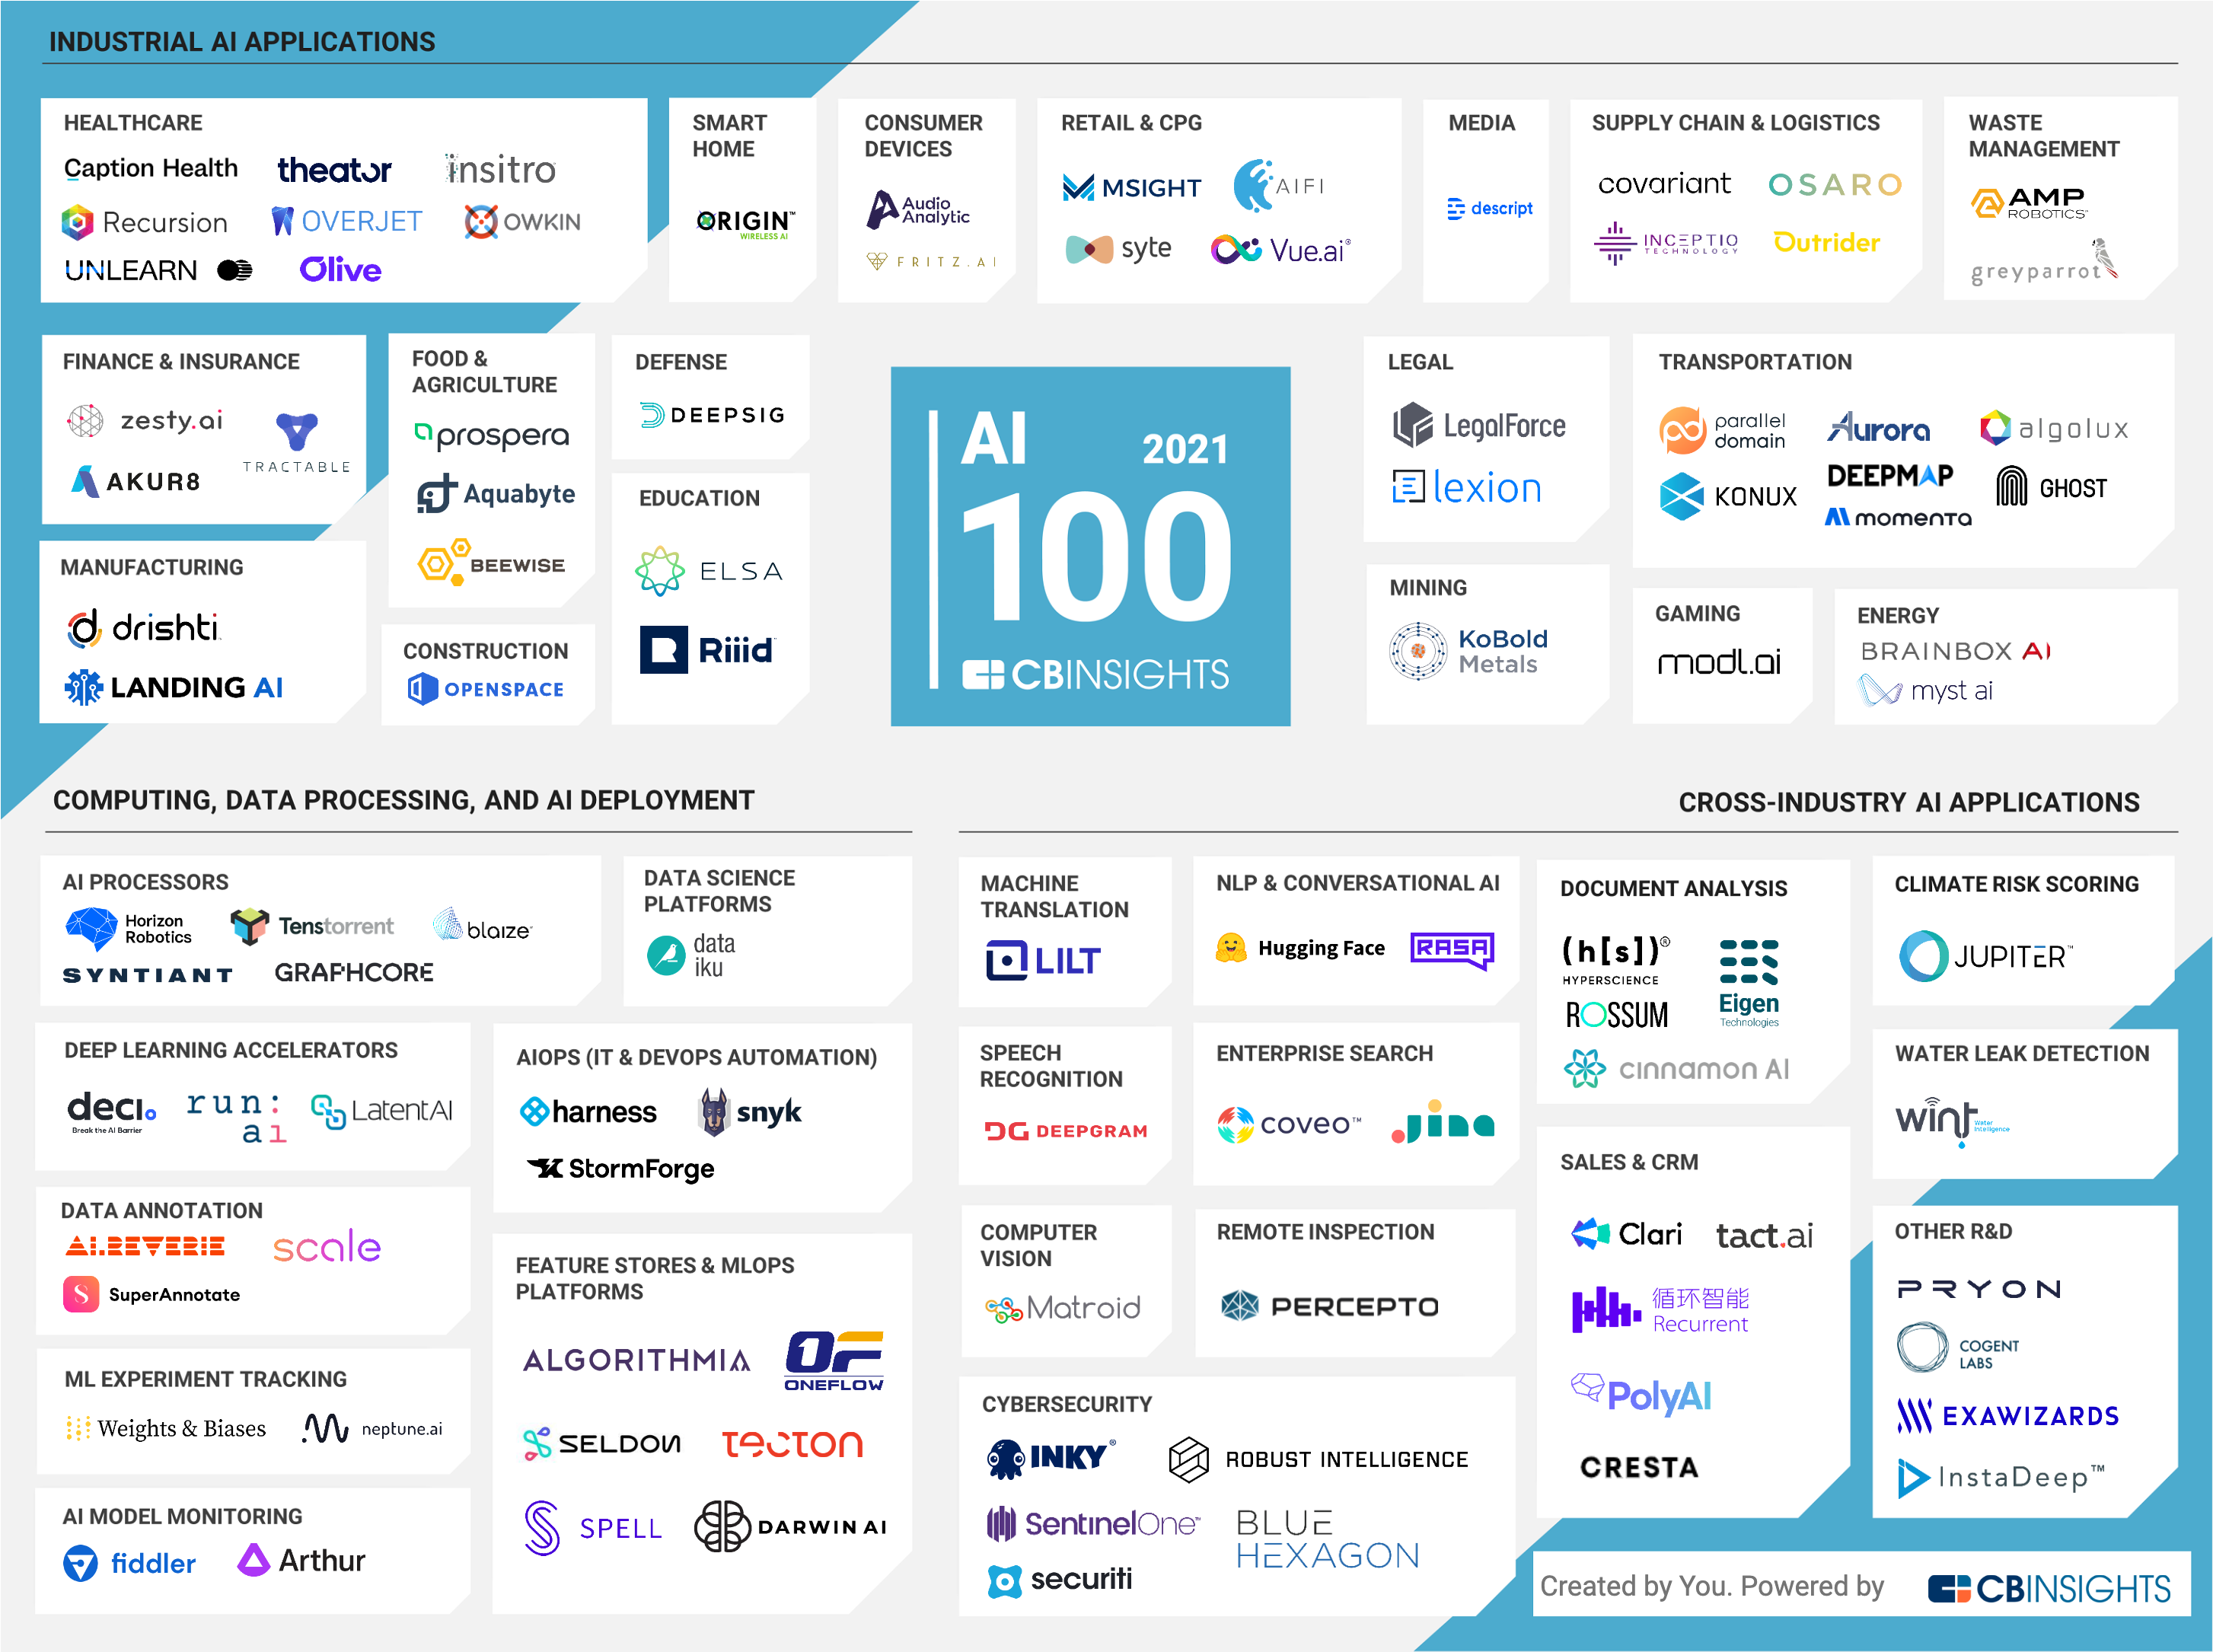 CB Insights' AI 100 list for 2021, which includes Arthur for ML model monitoring